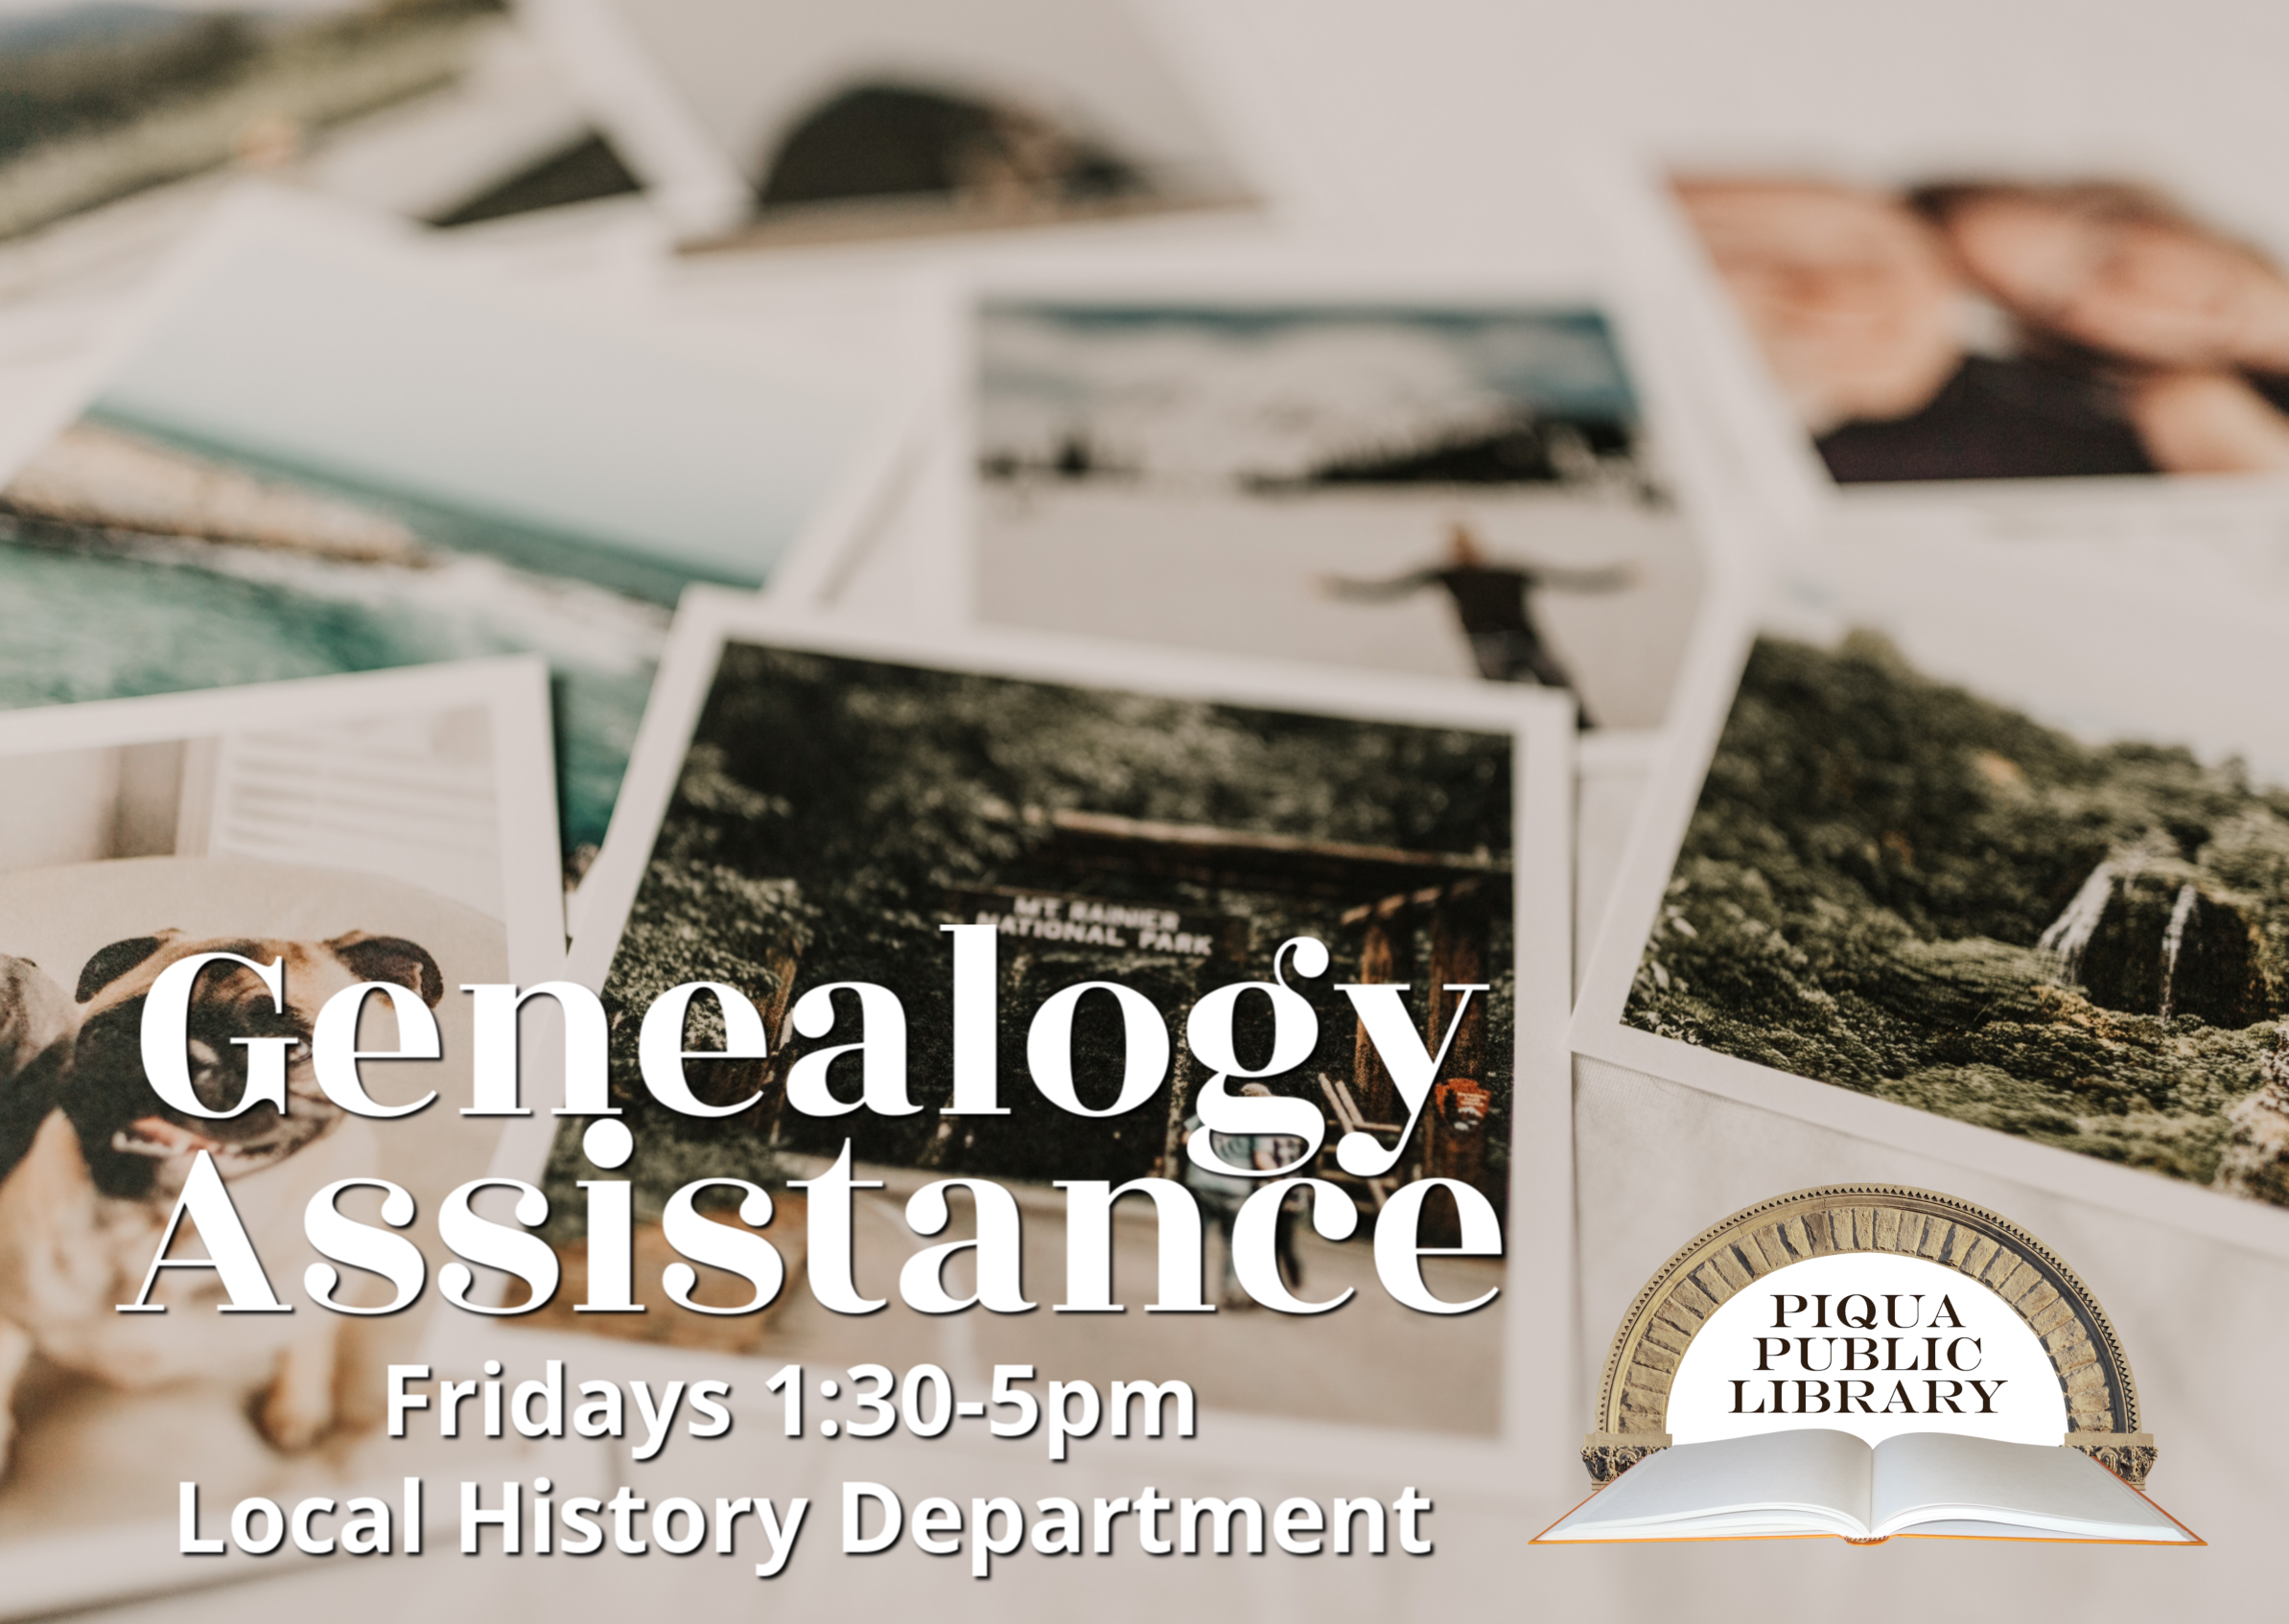 Would you like personalized genealogy assistance? Come to